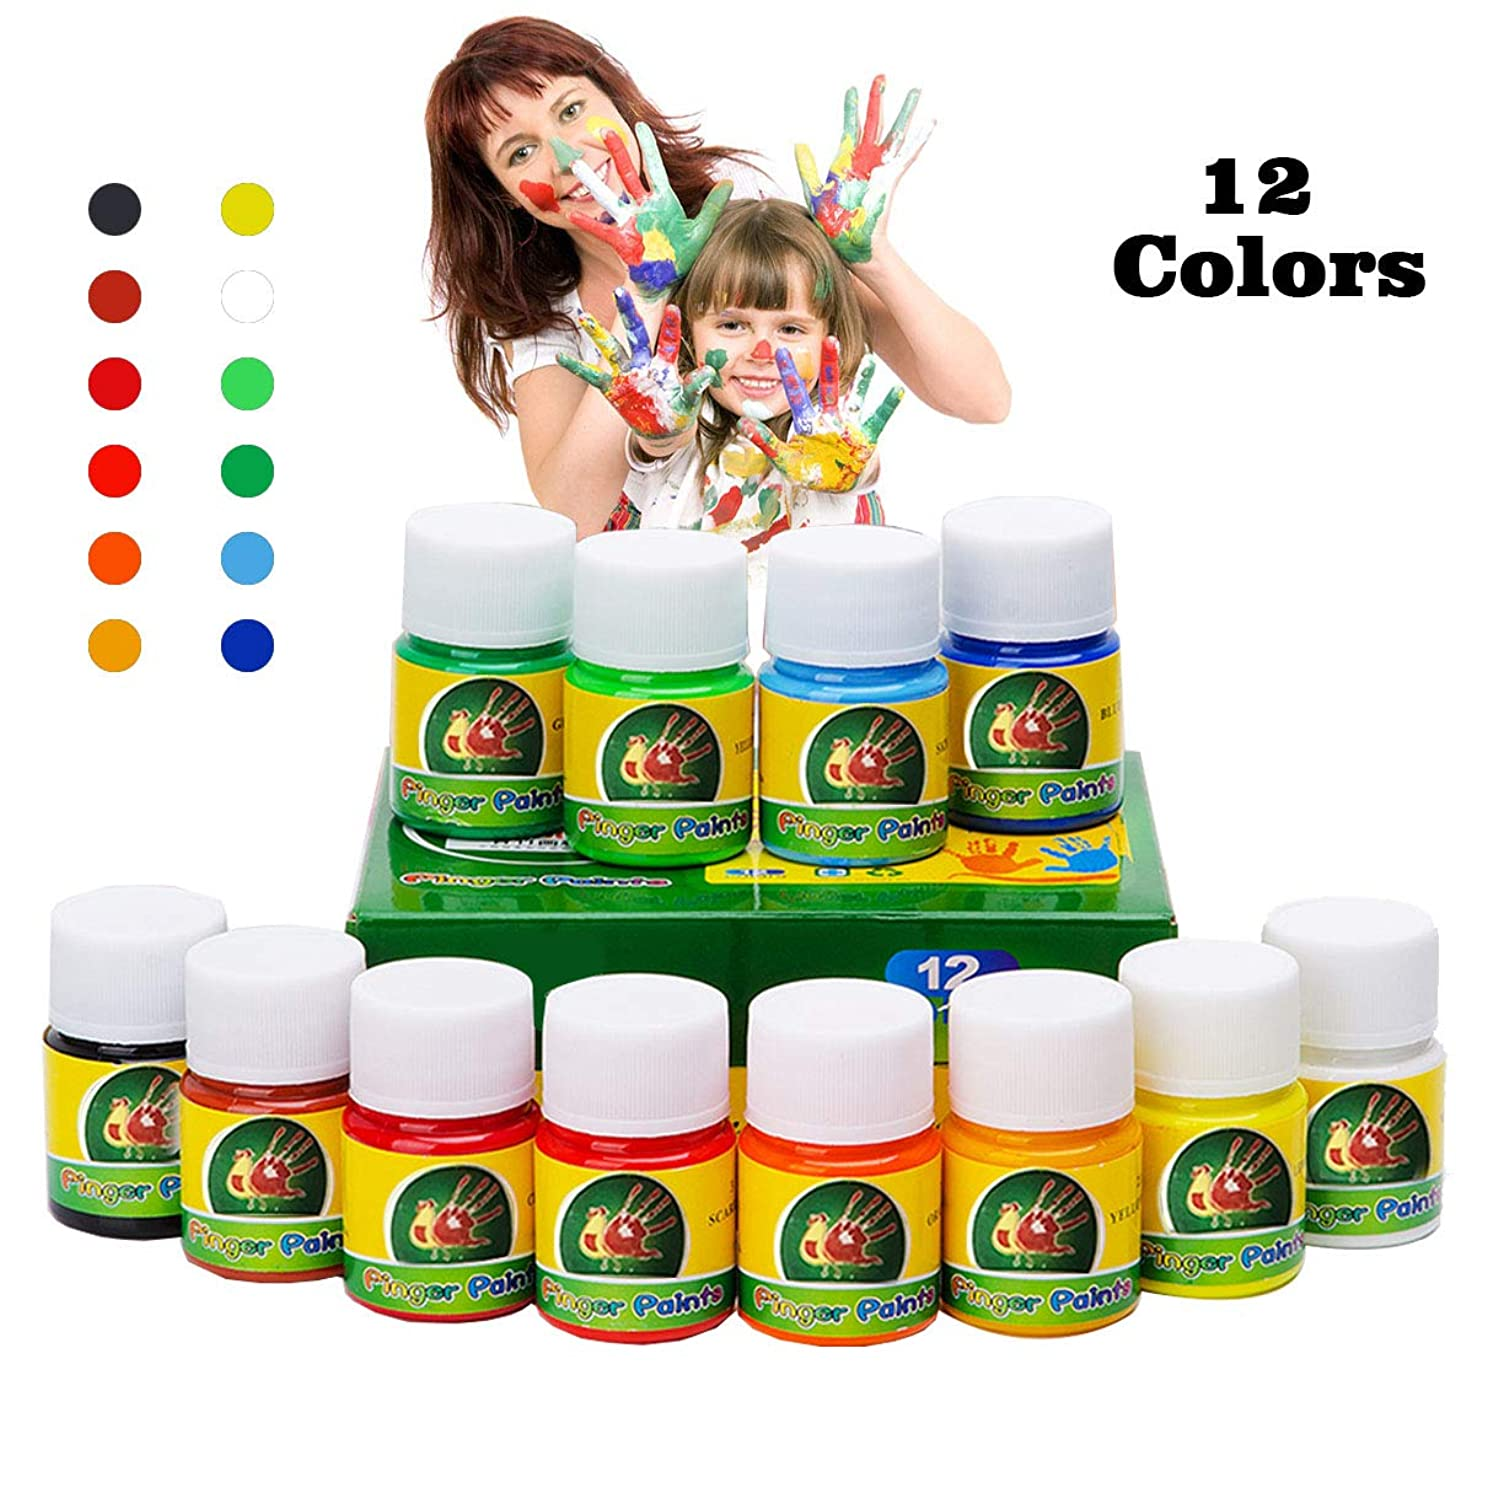 Hapree 12 Colors Washable Finger Paint, Non-Toxic Bathtub Kids Paint Set, Fingerpaints Kit for Toddlers, 12 x 30 ml (1.02 fl. oz)